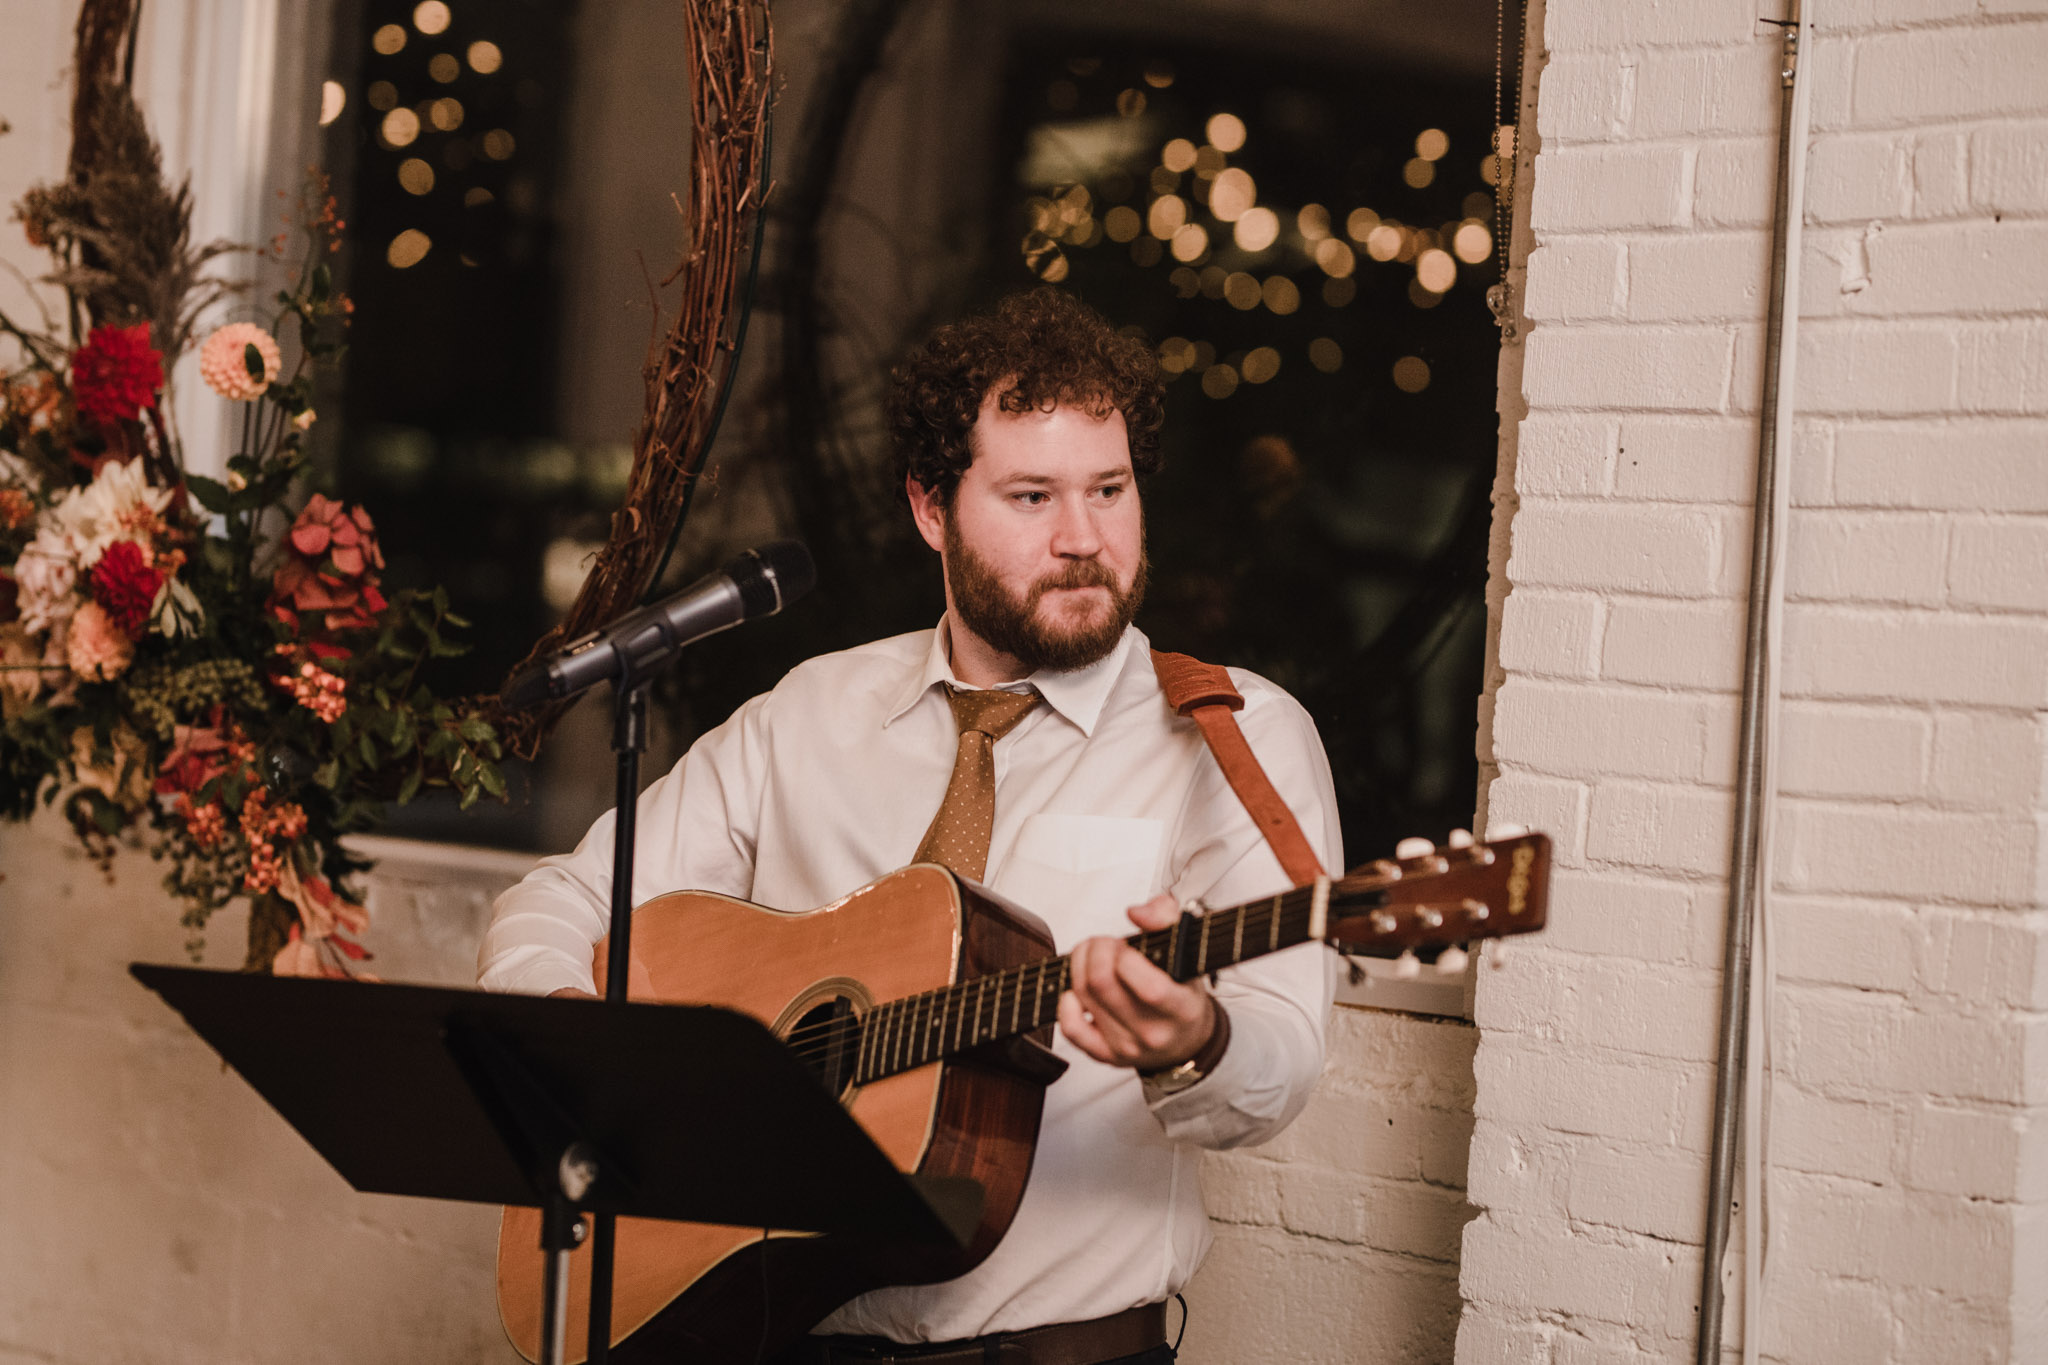 Toronto Coffee Shop Wedding - Propeller cafe - live music